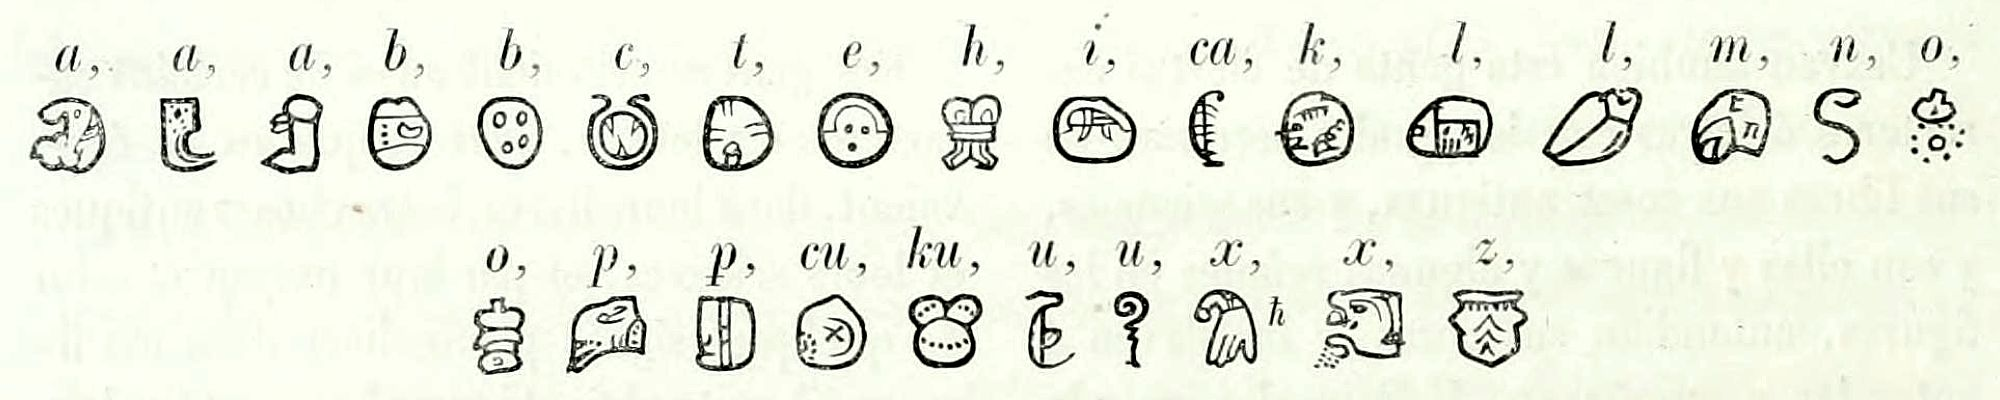 Landa Alphabet after Brasseur 1869